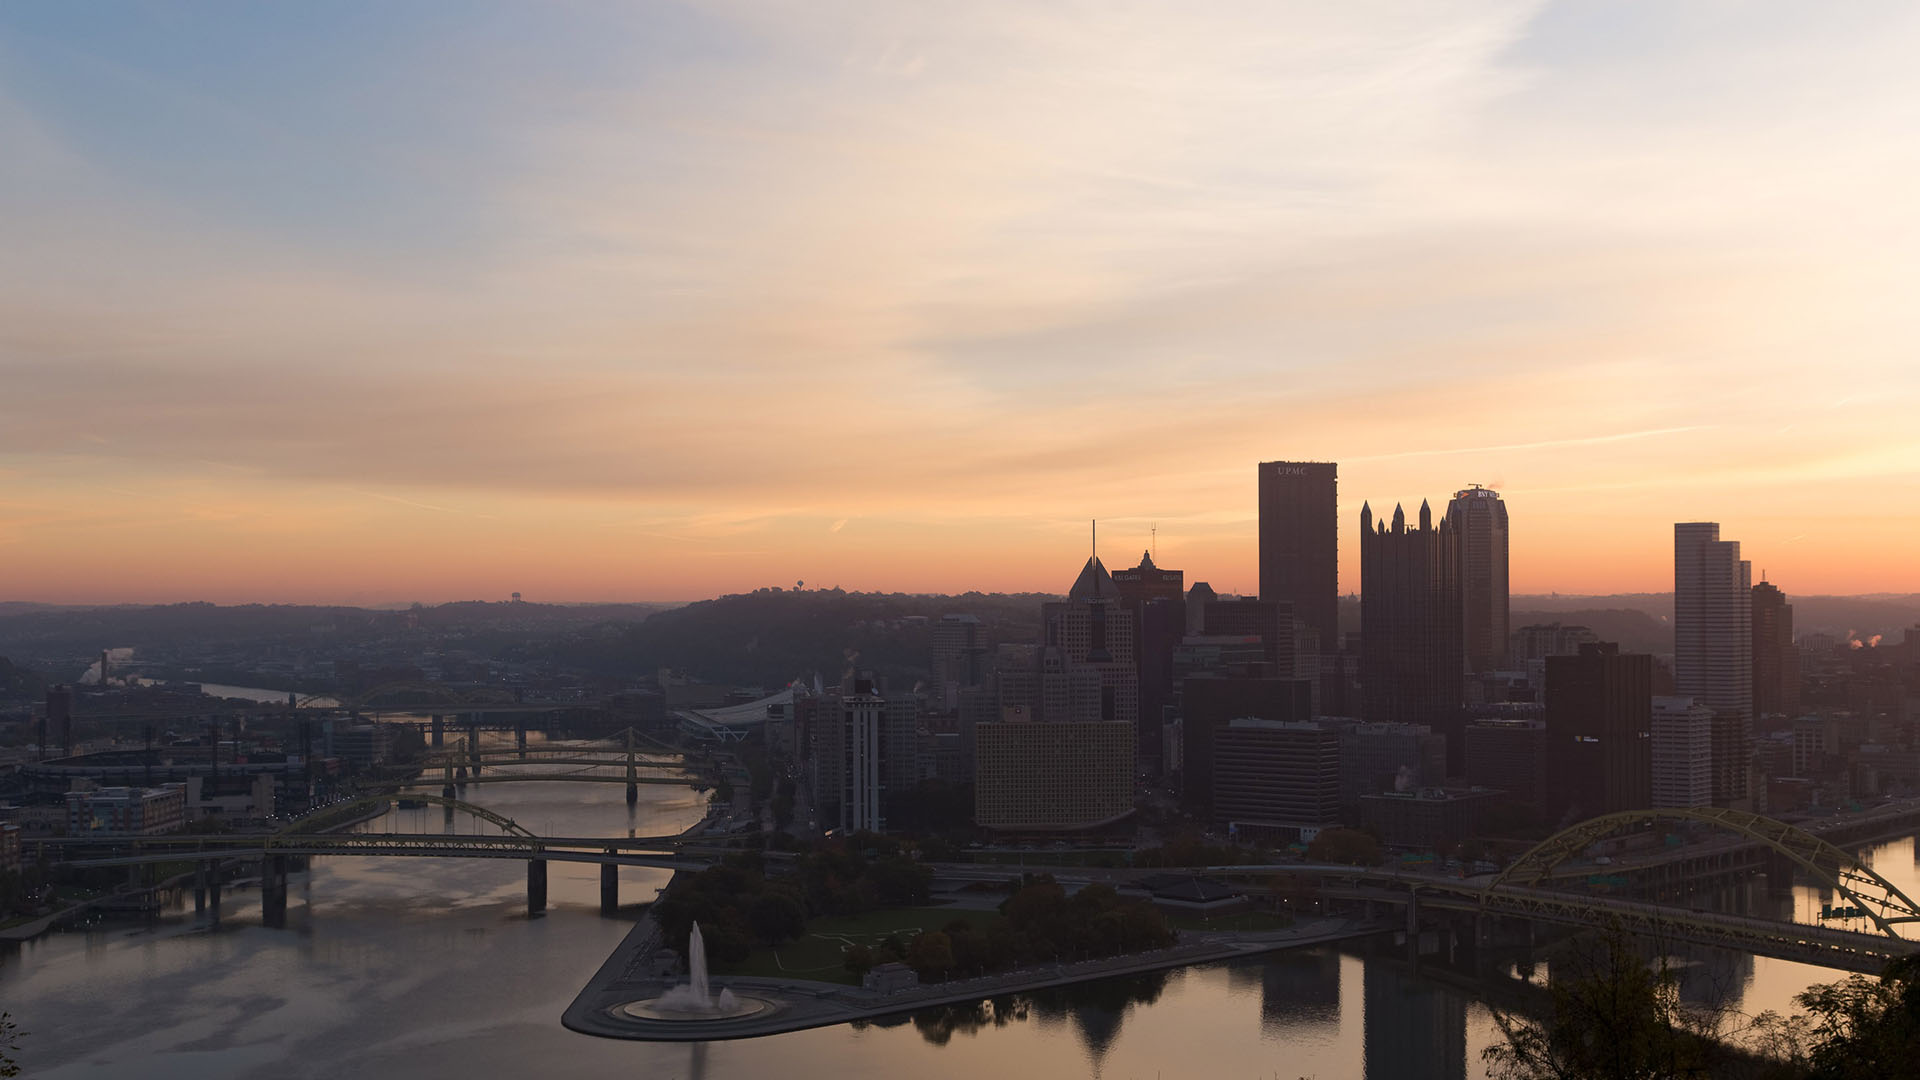 live wallpaper time lapse pittsburgh downtown photograph high quality wallpaper sunrise dawn